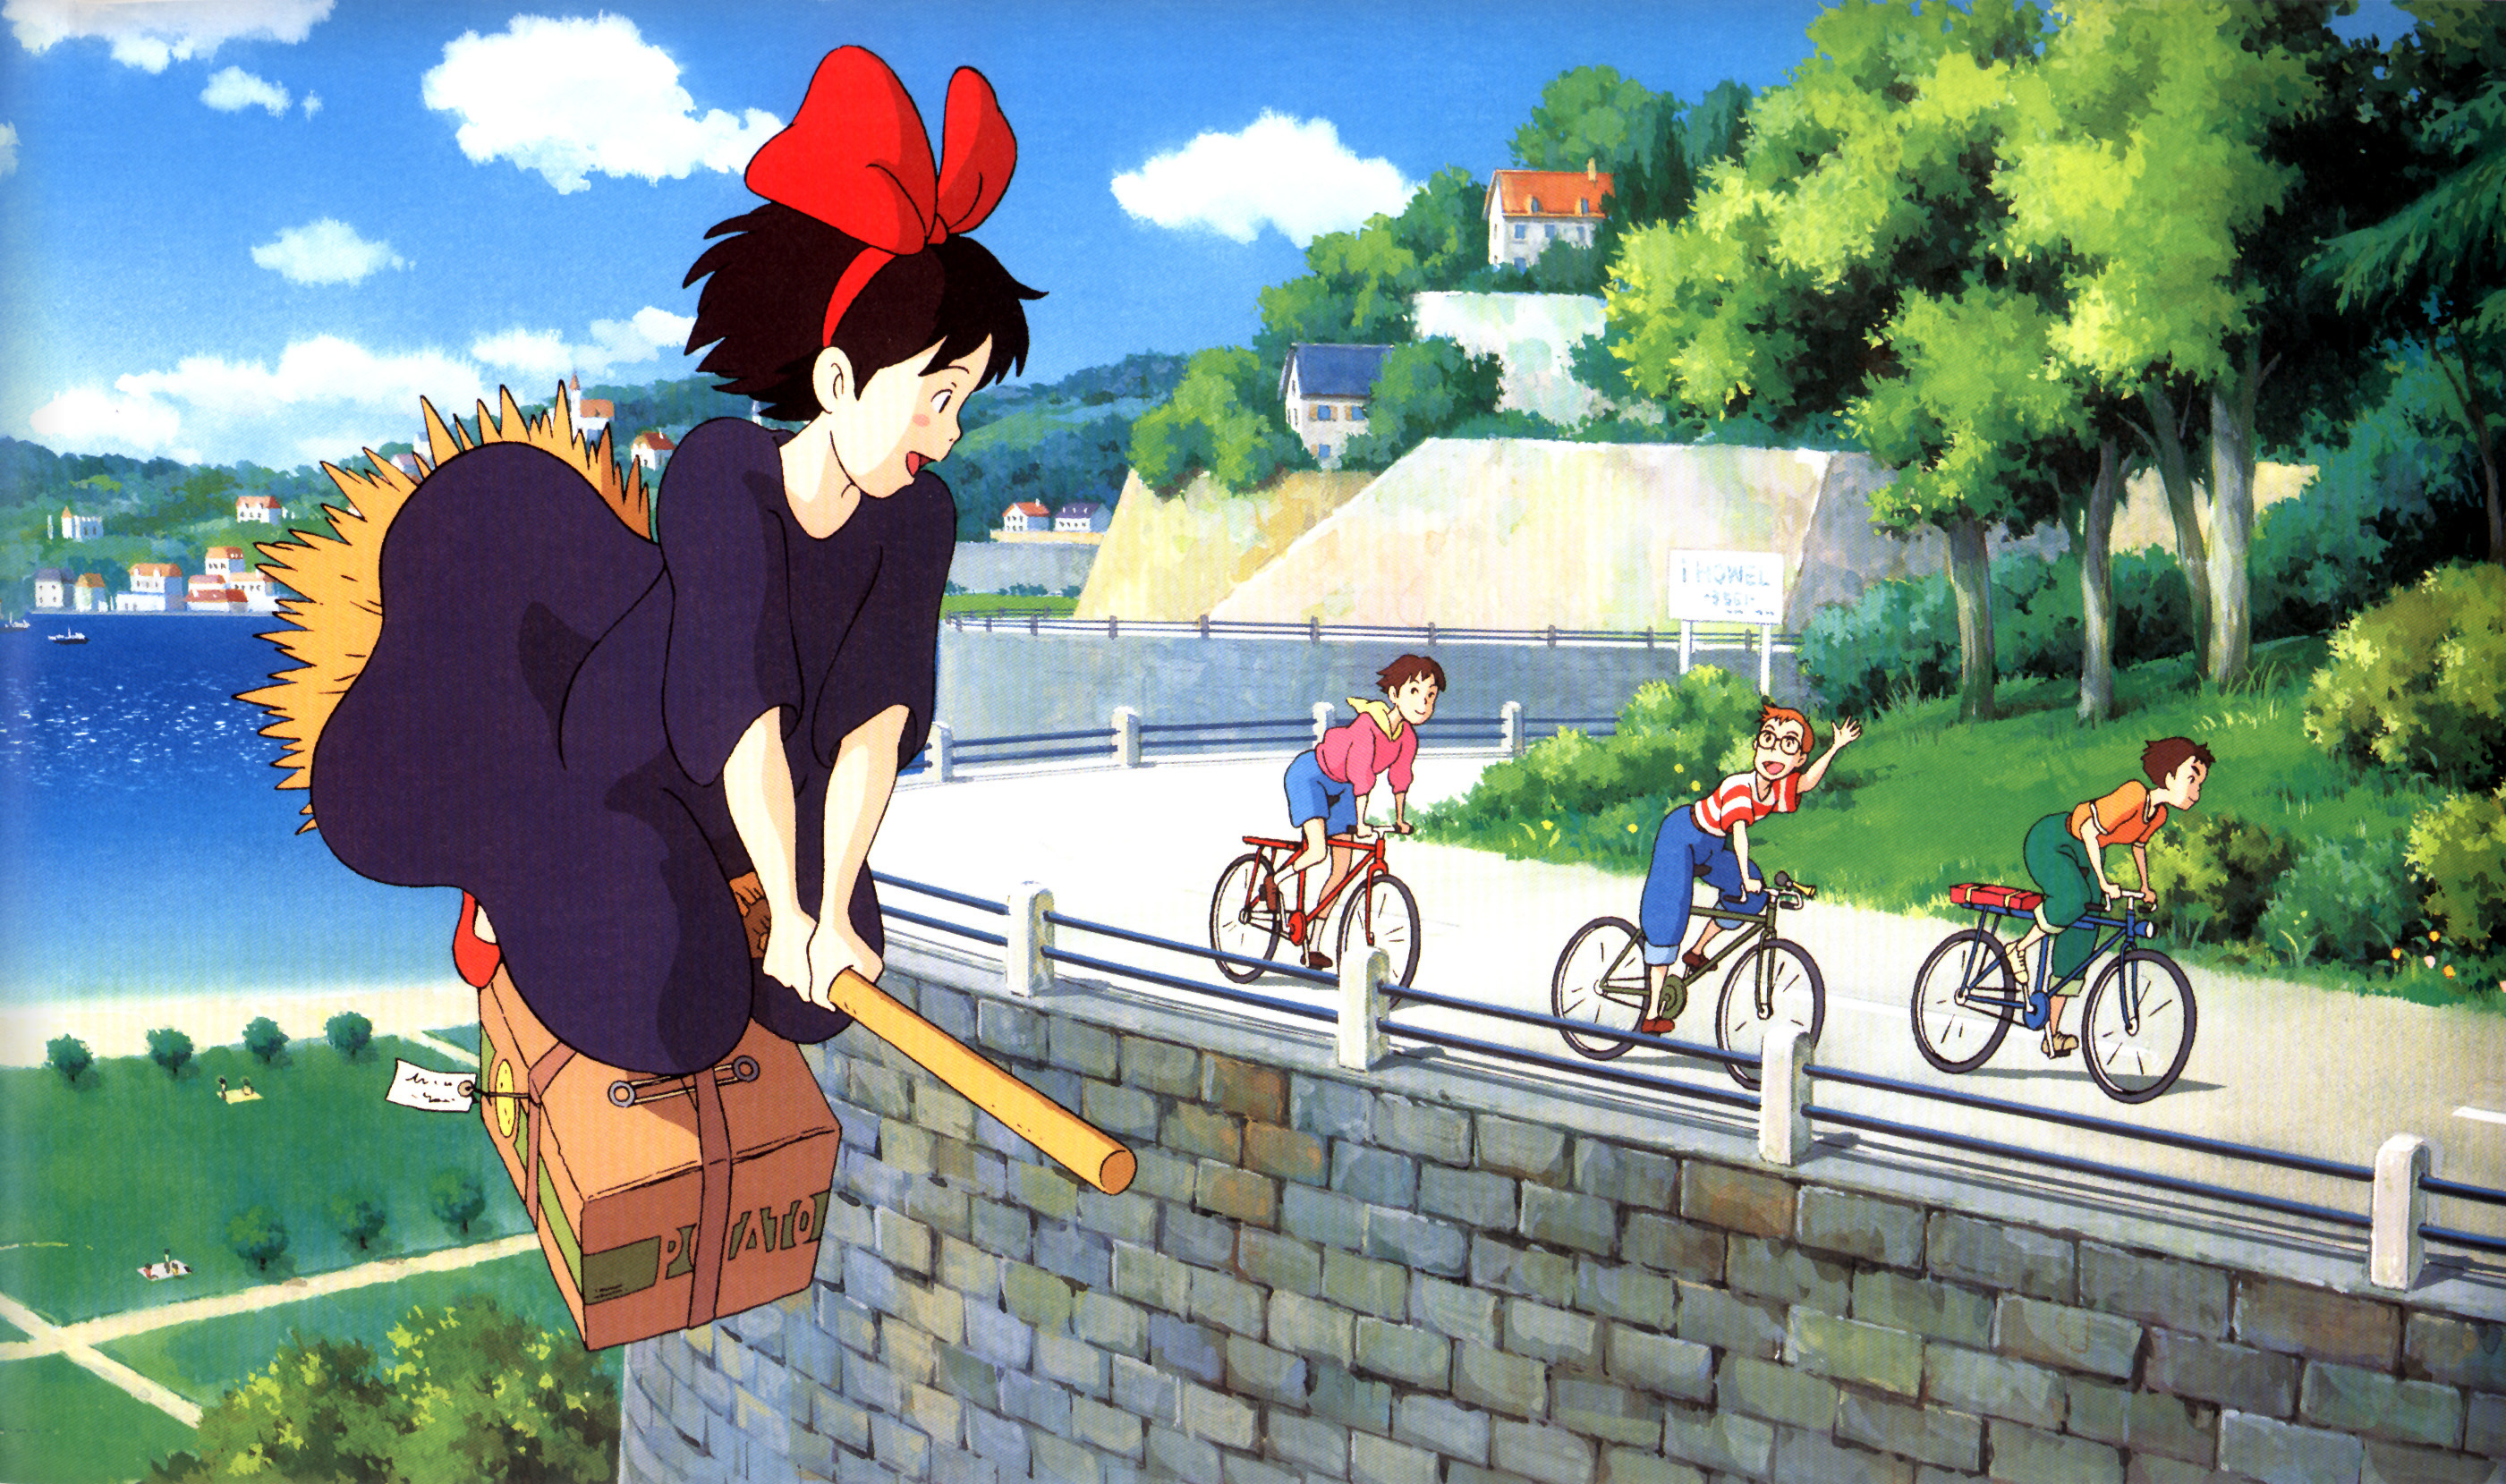 5 Trivia Facts About Kiki's Delivery Service